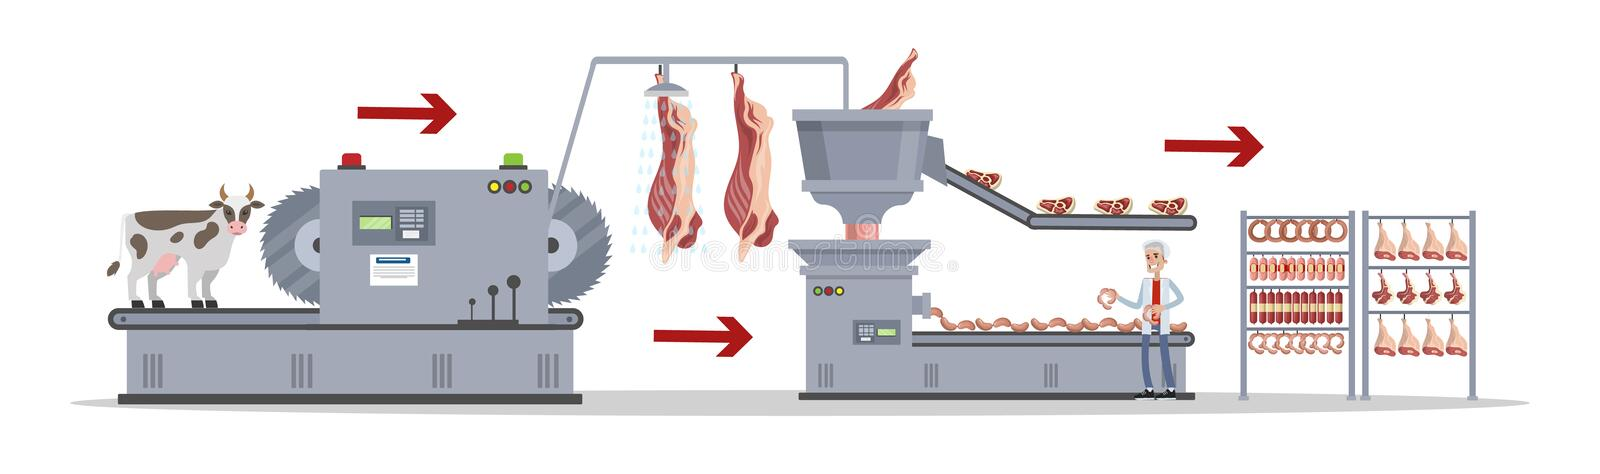 Meat production process stock illustration